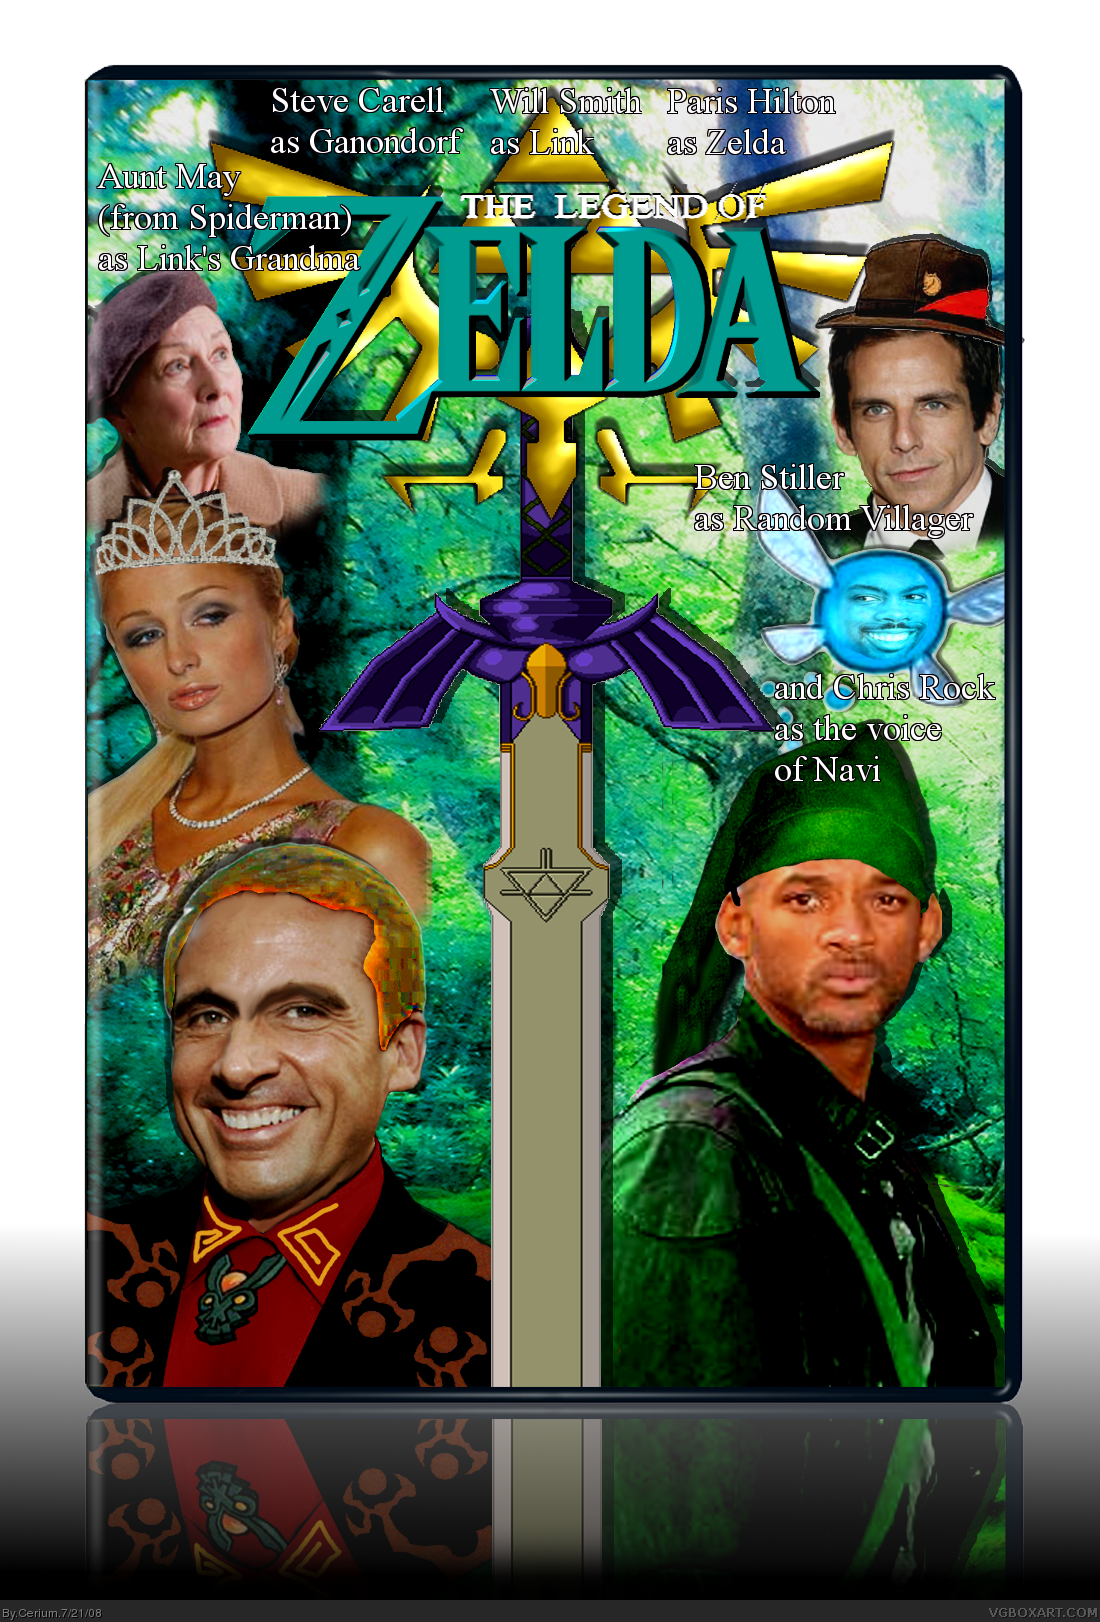 The Legend Of Zelda box cover